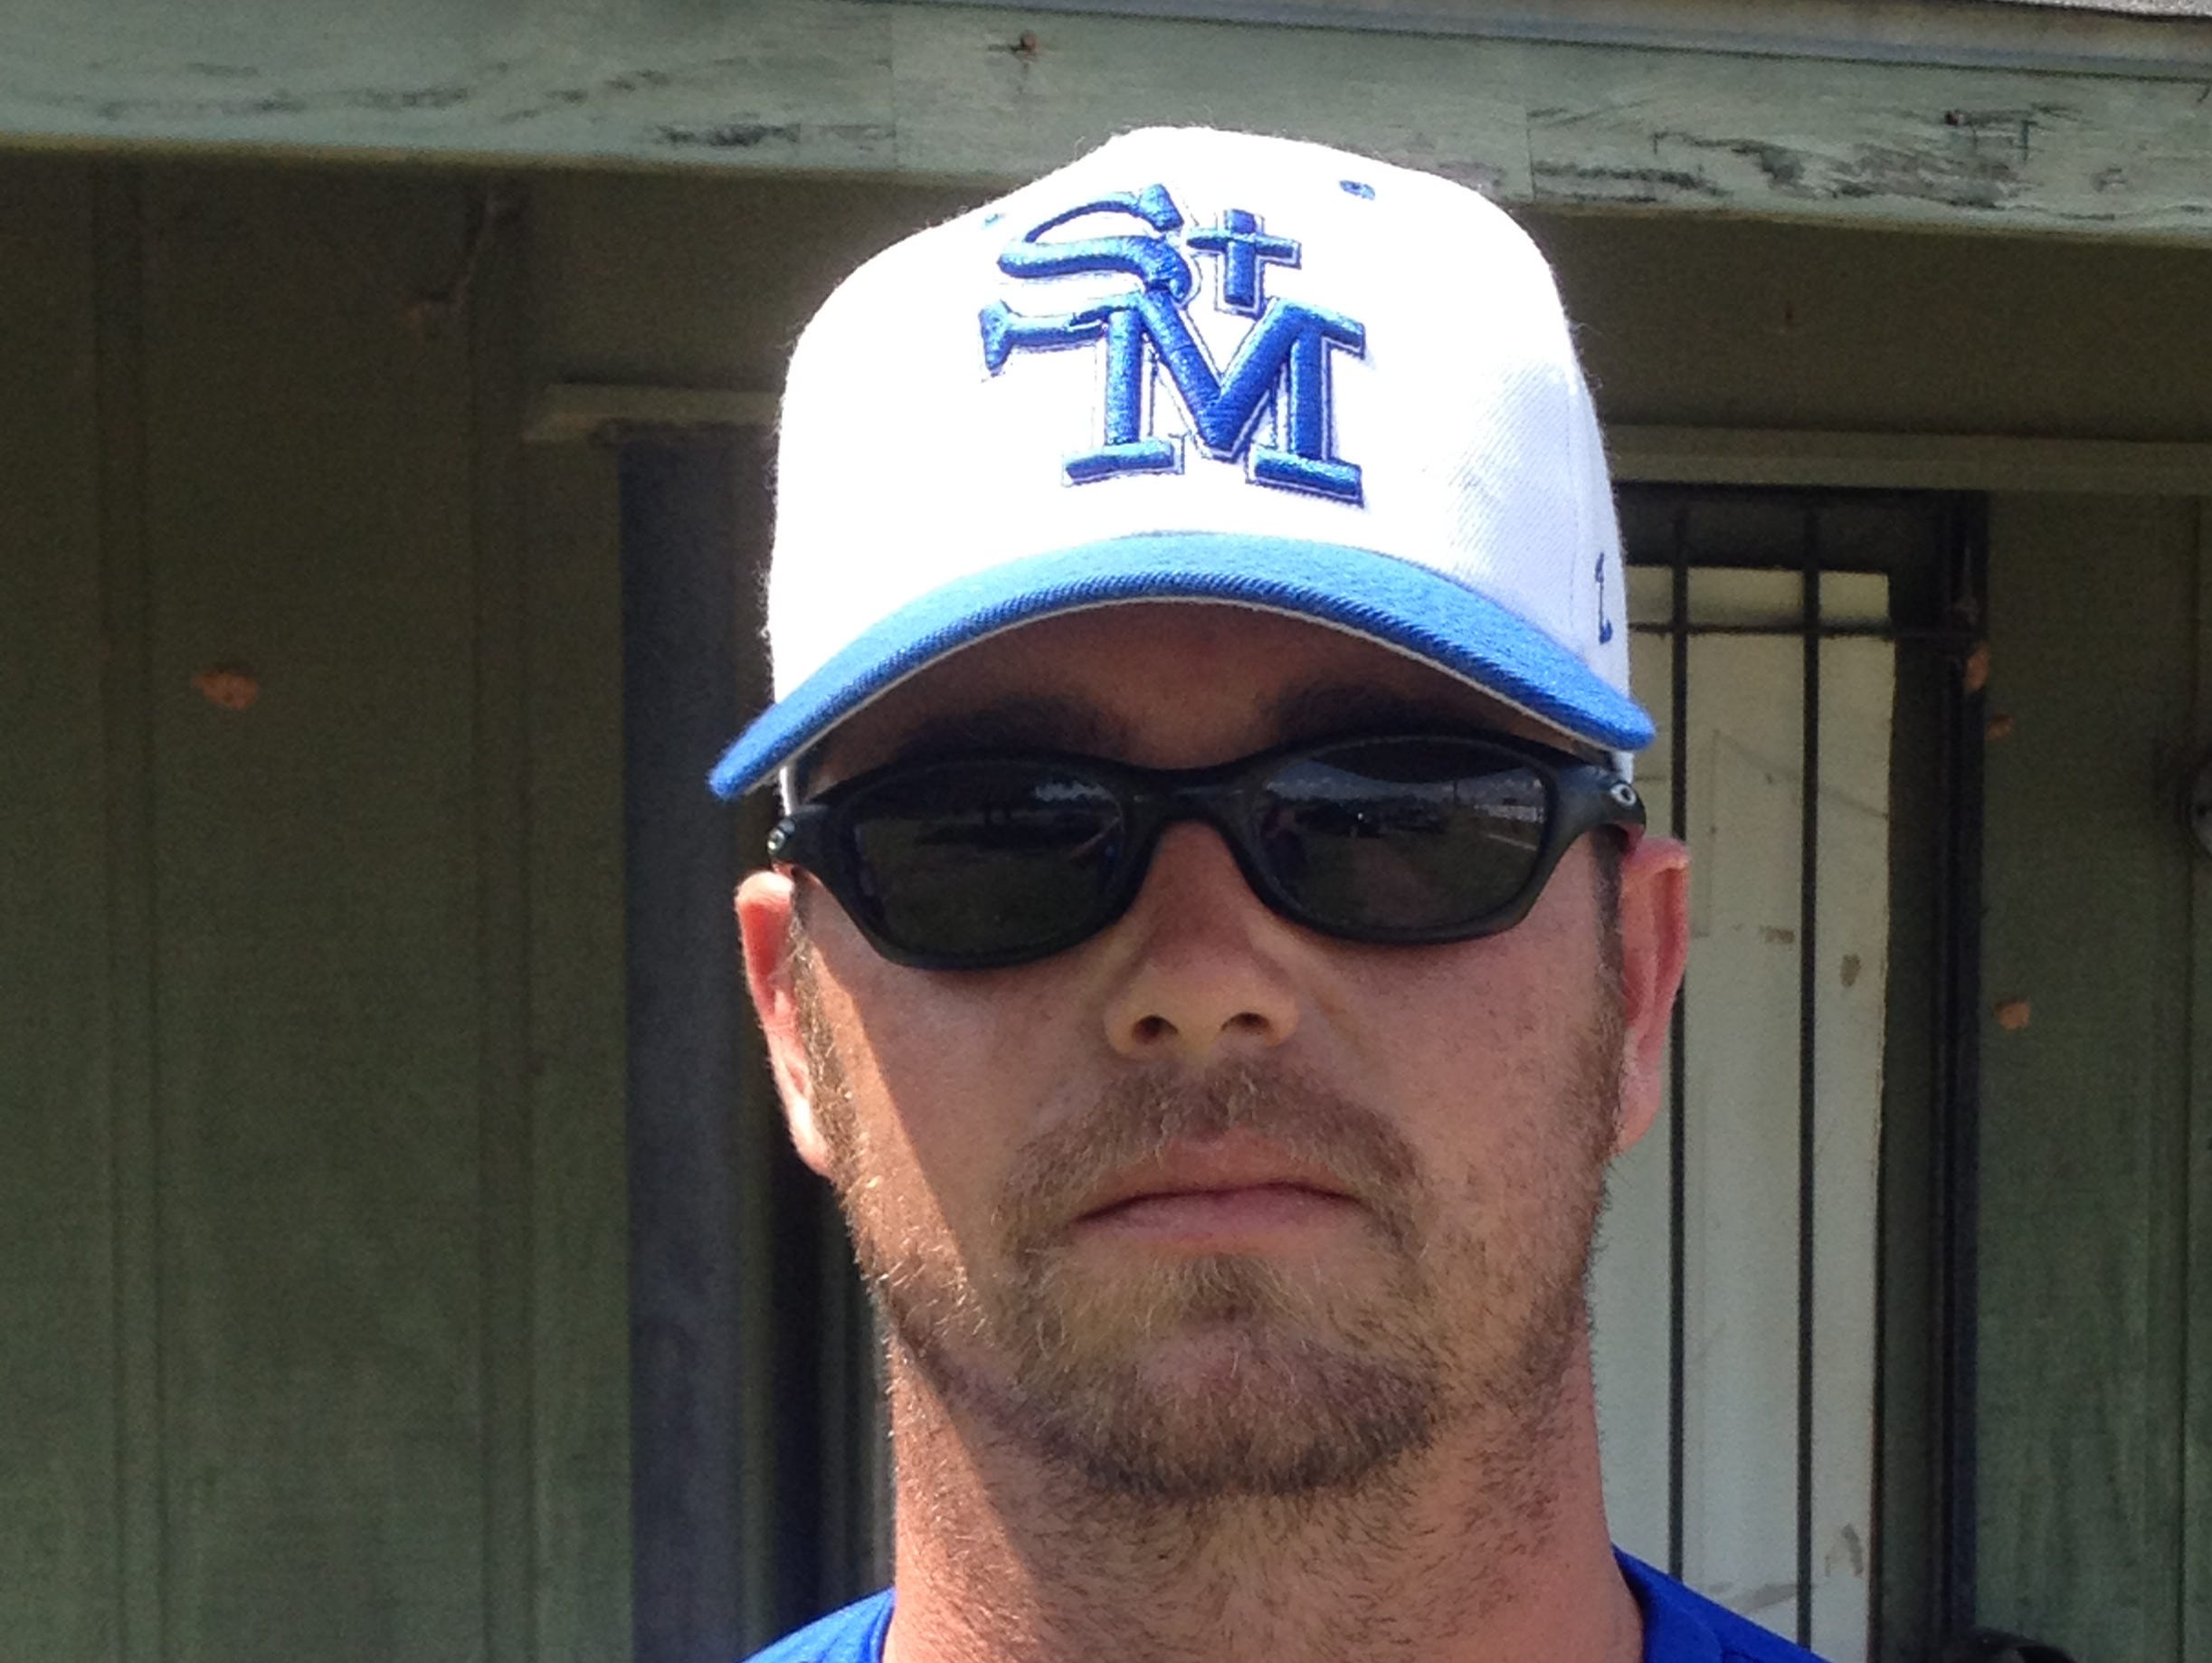 Former St. Mary's baseball coach Jeramie Hale, who led the Tigers to the 2011 Class 1A championship, is the new head baseball coach at Natchitoches Central. He'd spent the past two seasons as an assistant for the Chiefs.